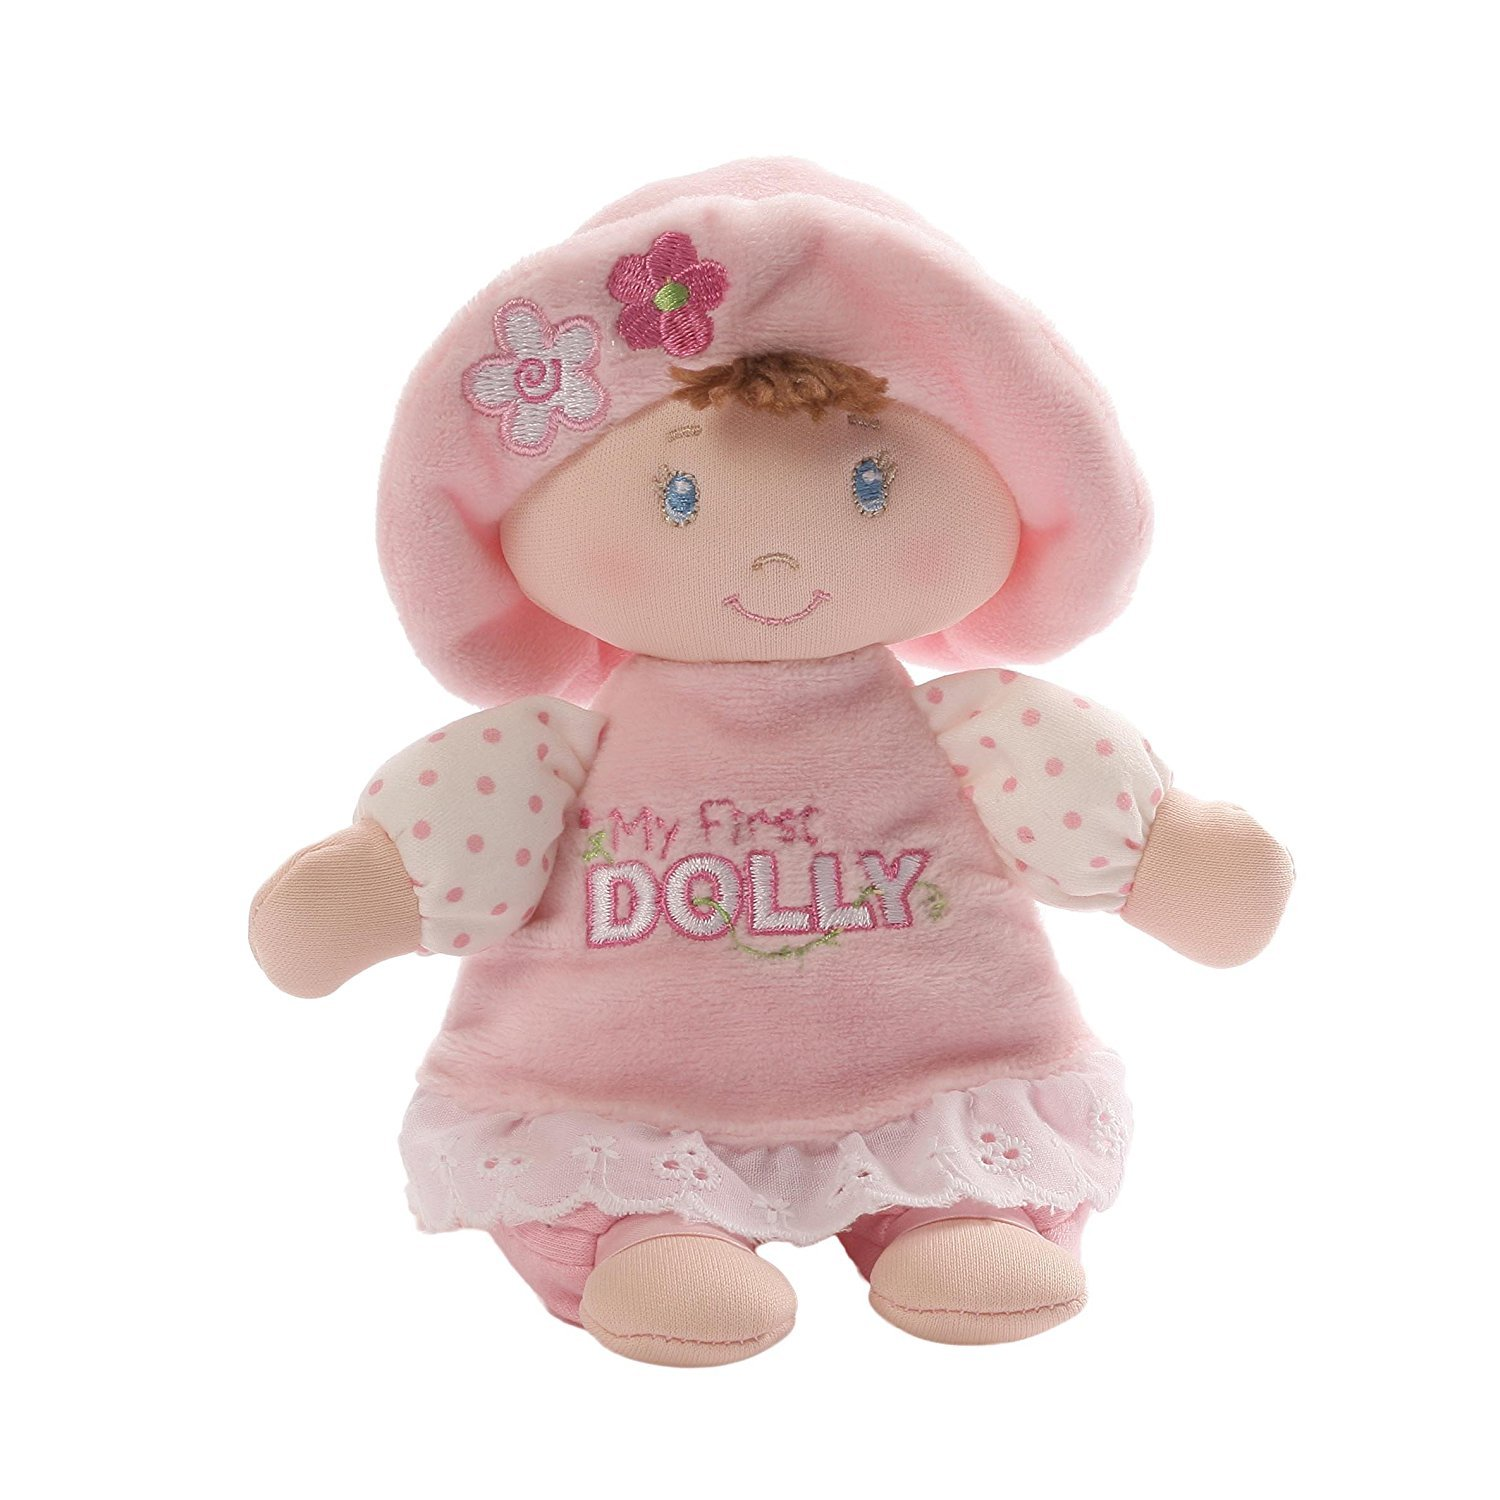 Baby GUND My First Dolly Brunette Stuffed Plush Rattle, 7''